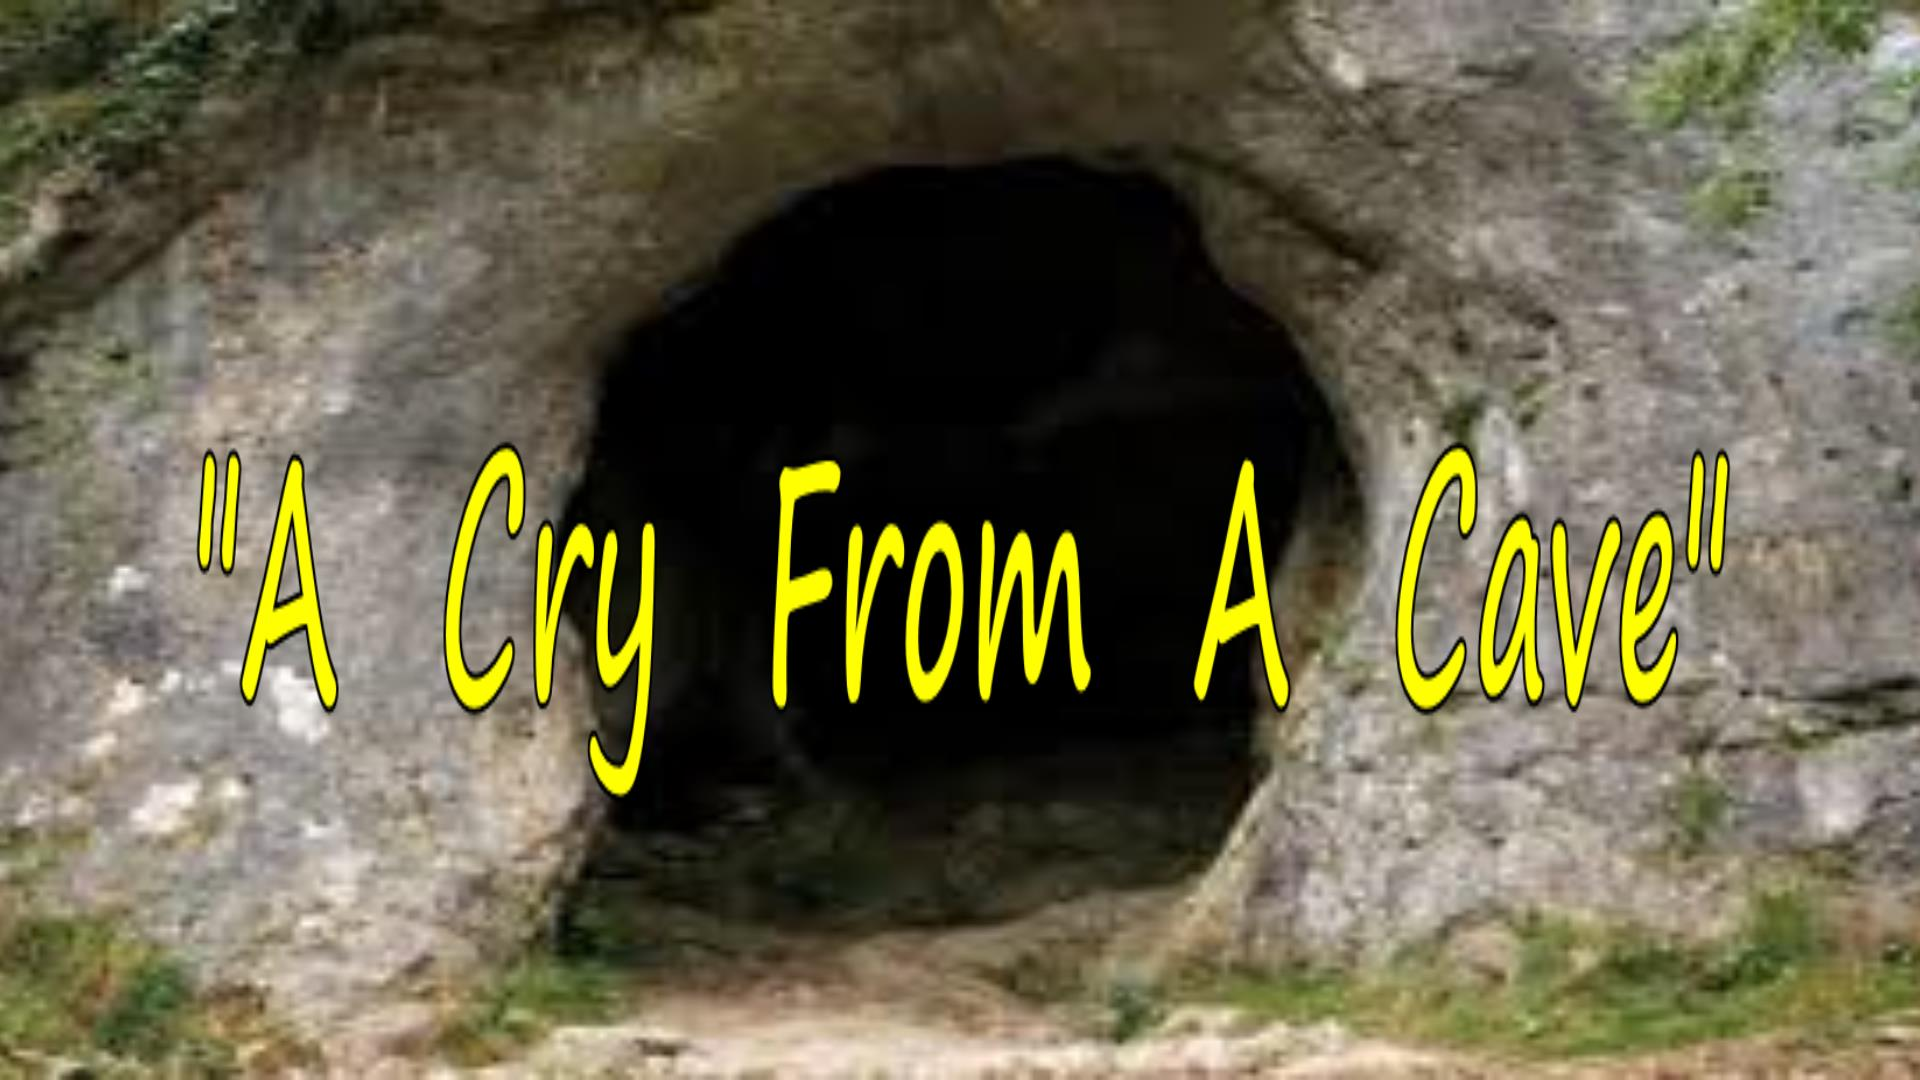 A Cry From A Cave